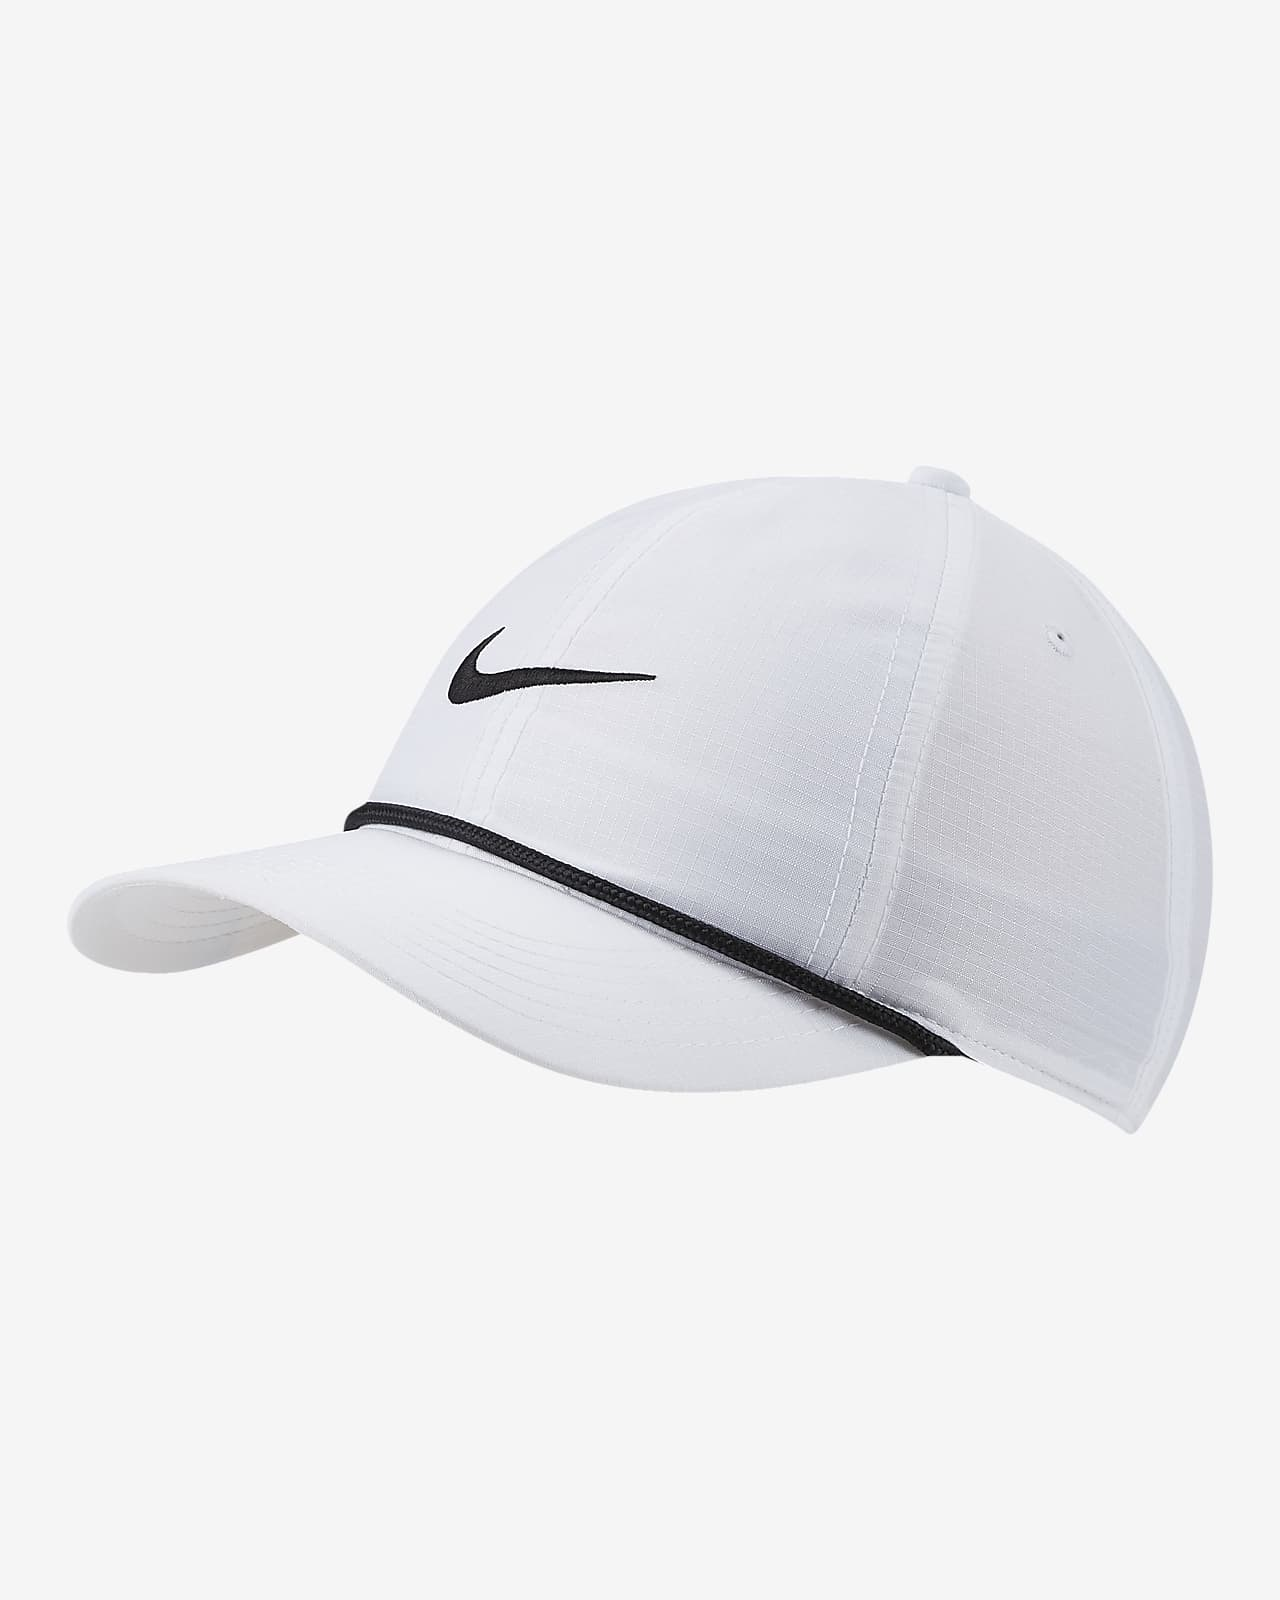 Nike Older Kids' Golf Hat